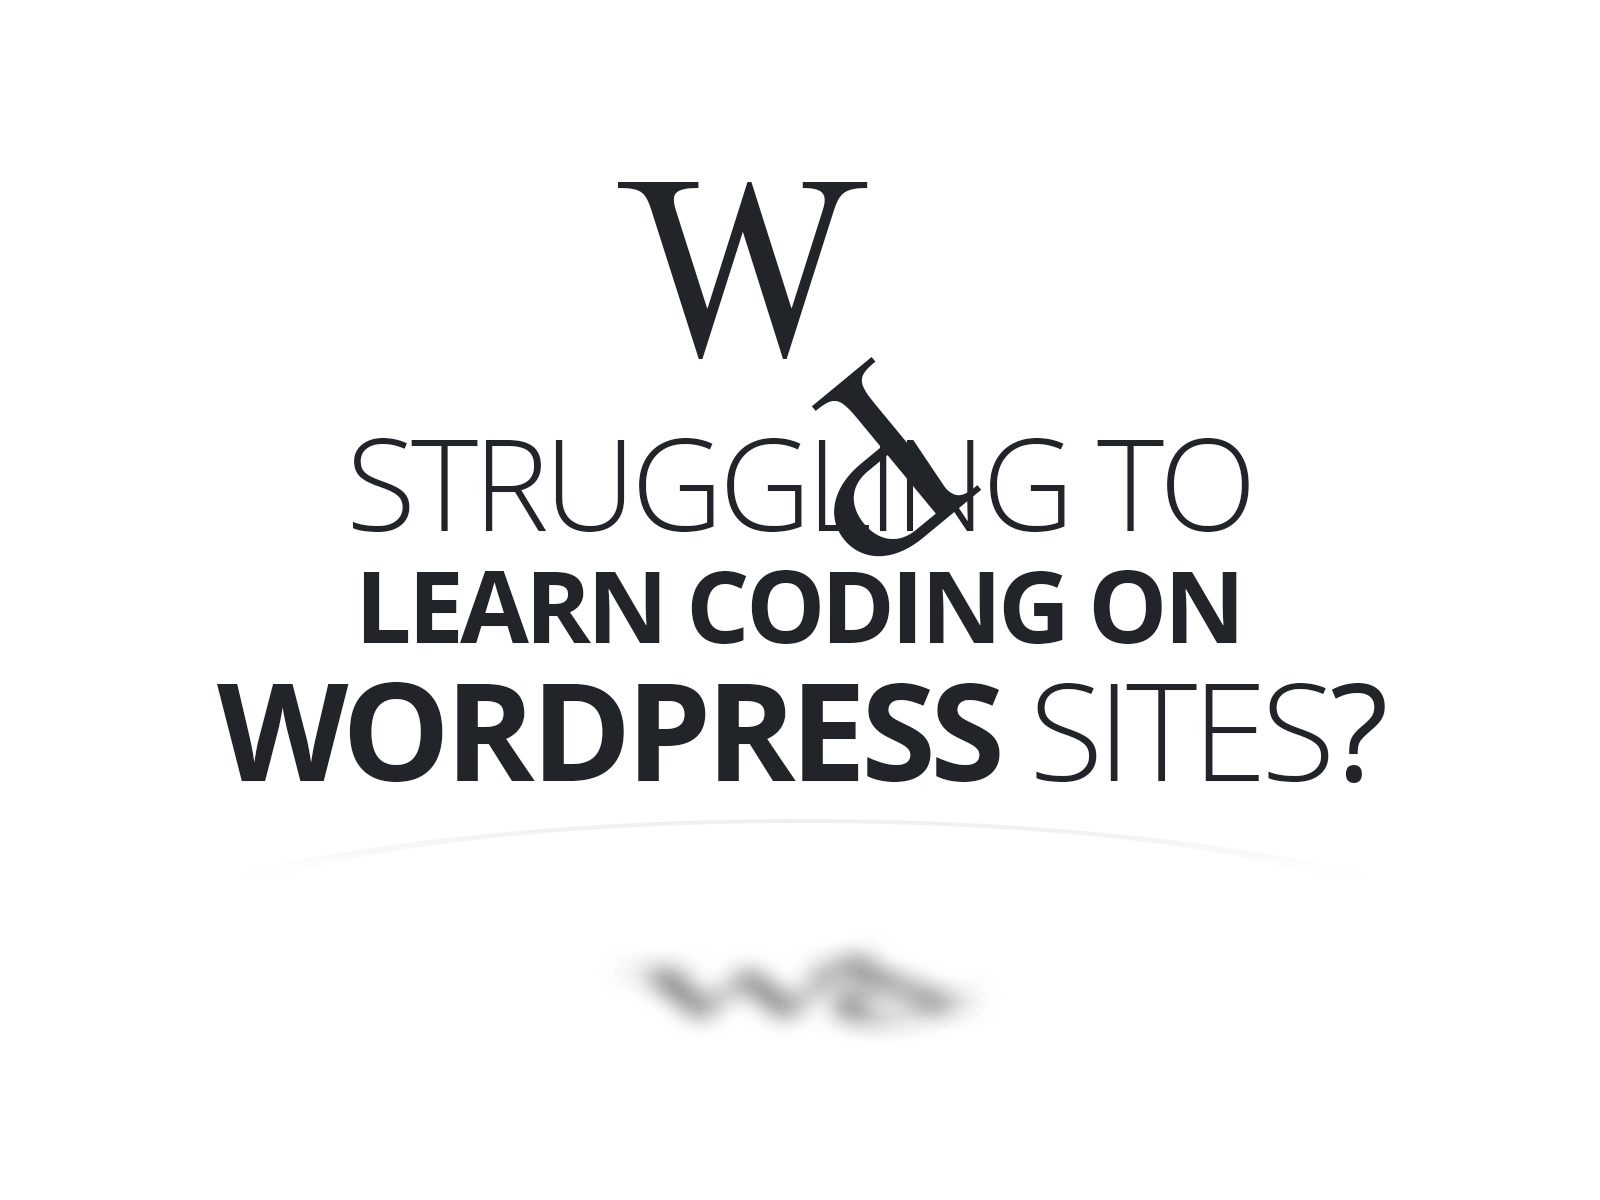 Struggling with Learning to Code Wordpress Websites?